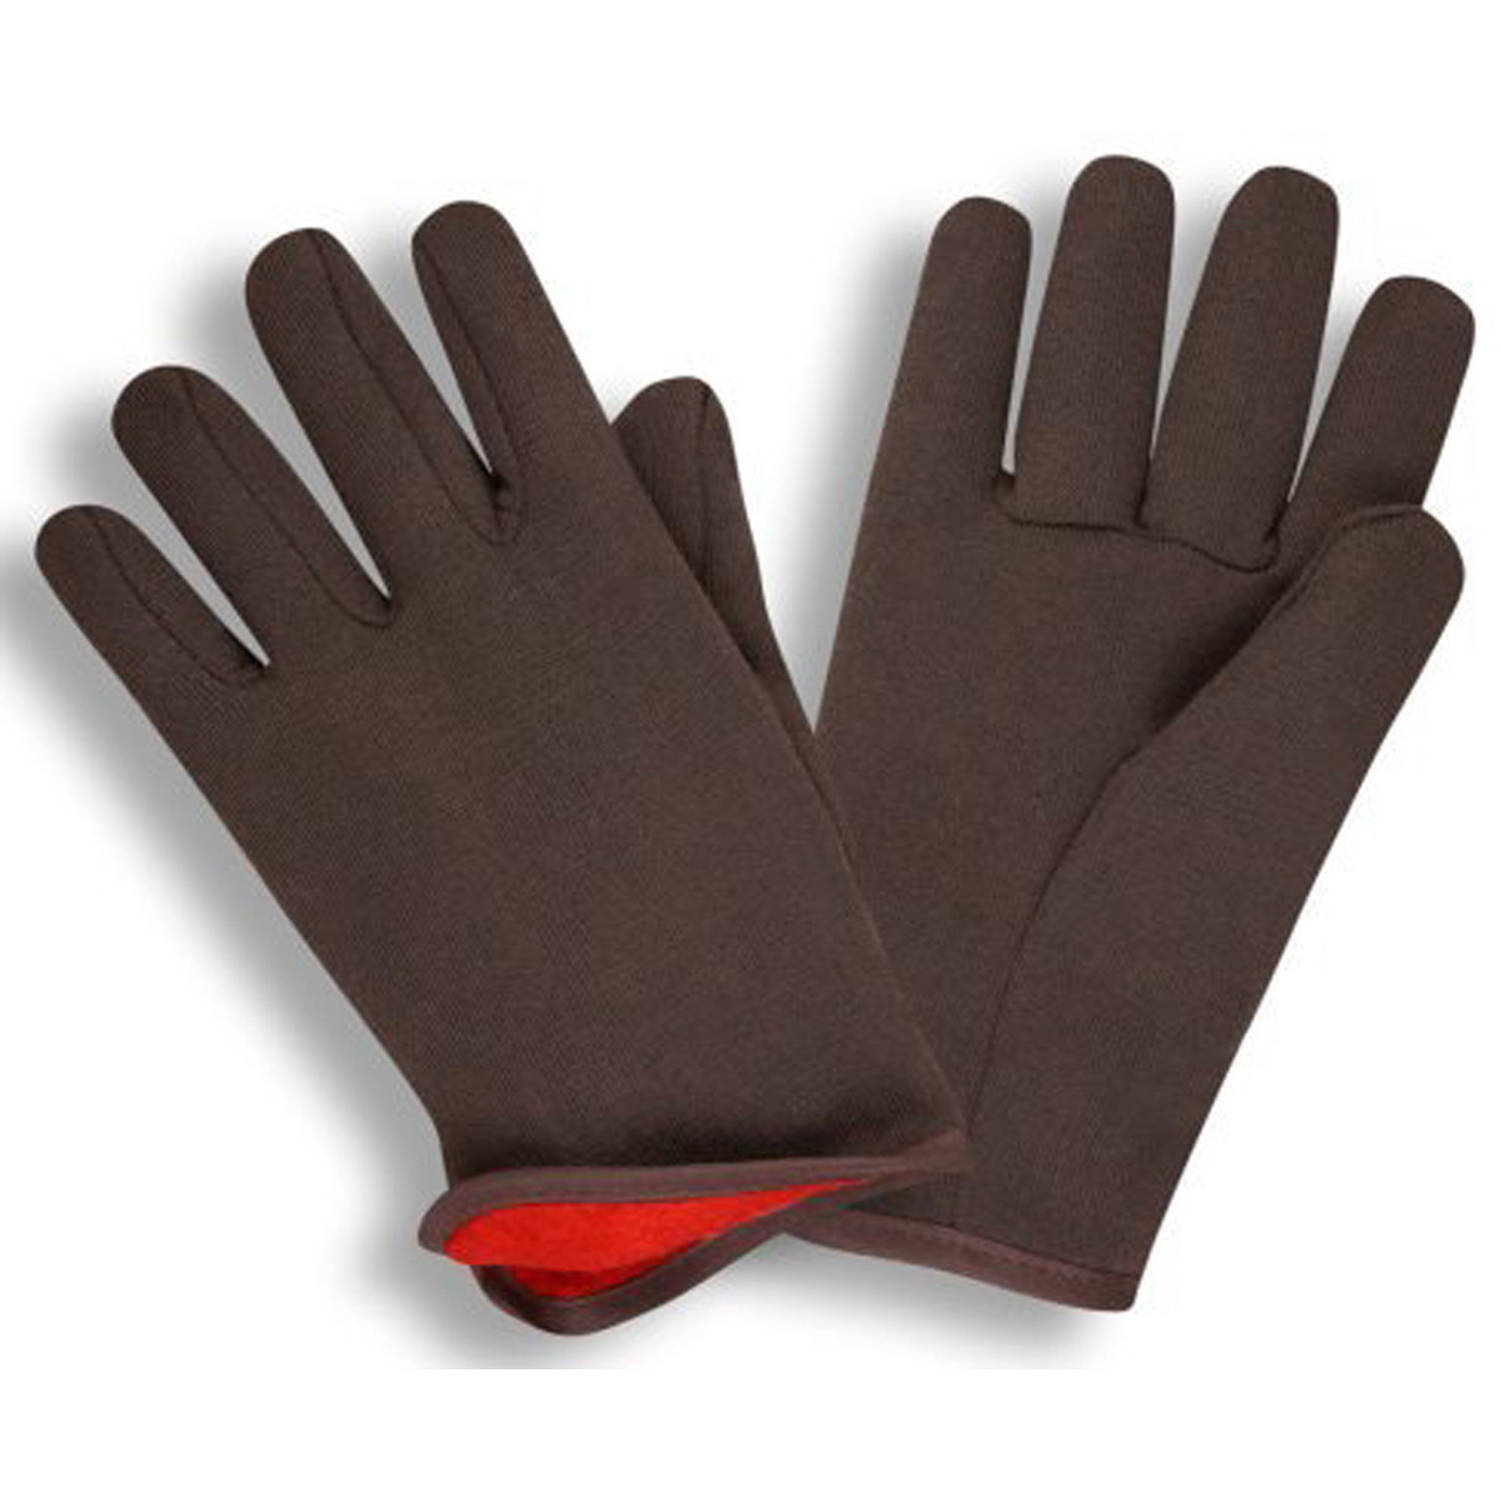 G & F Jersey Winter Gloves, Brown with Red Fleece Lining, Large, 12 Pairs by G & F